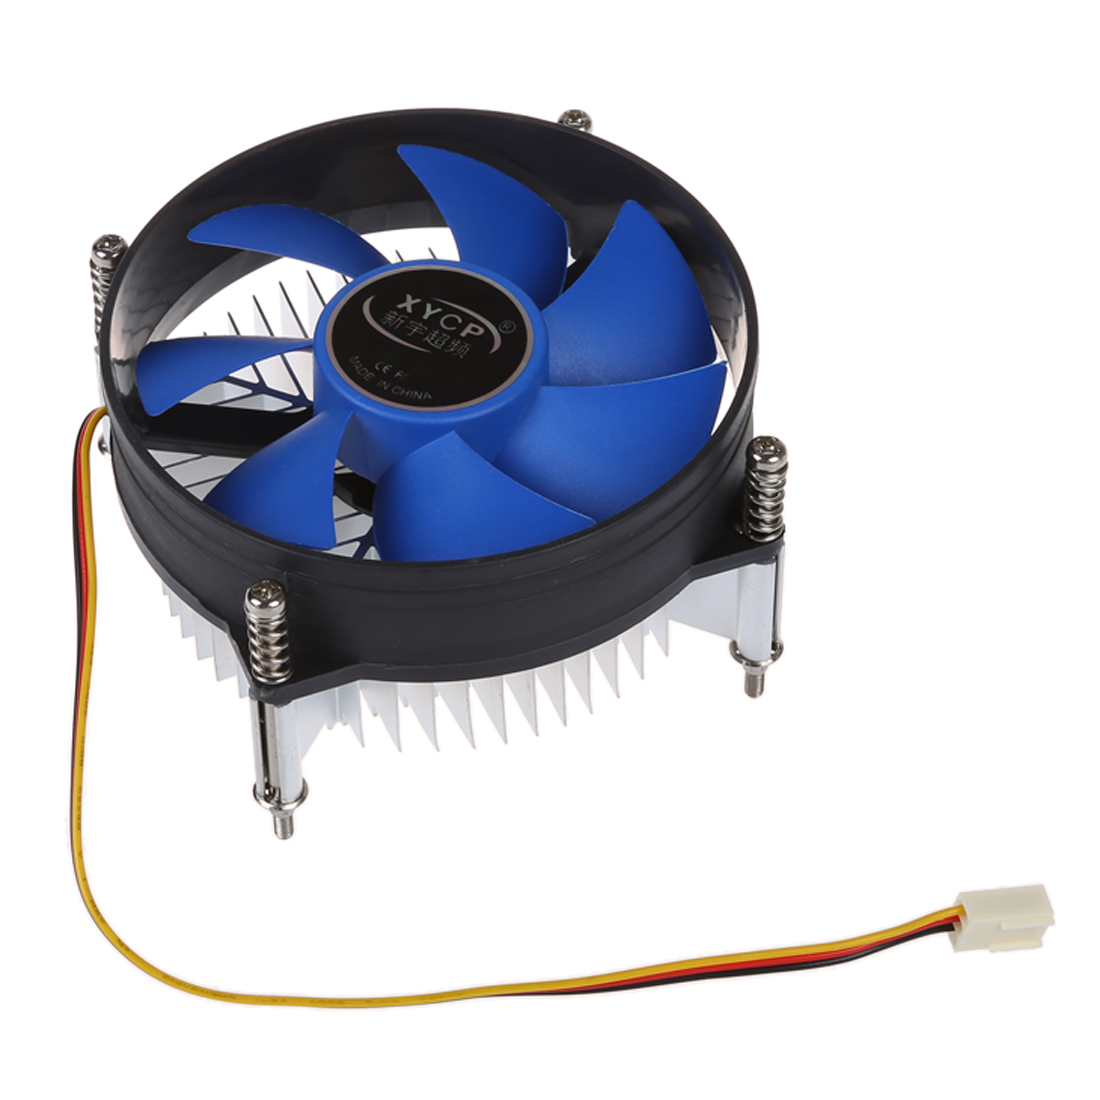 XYCP Processor Cooler CPU Heat Sink for 65W Intel Socket <font><b>LGA</b></font> 1155/<font><b>1156</b></font> Core i3 / <font><b>i5</b></font> / i7 Blue image